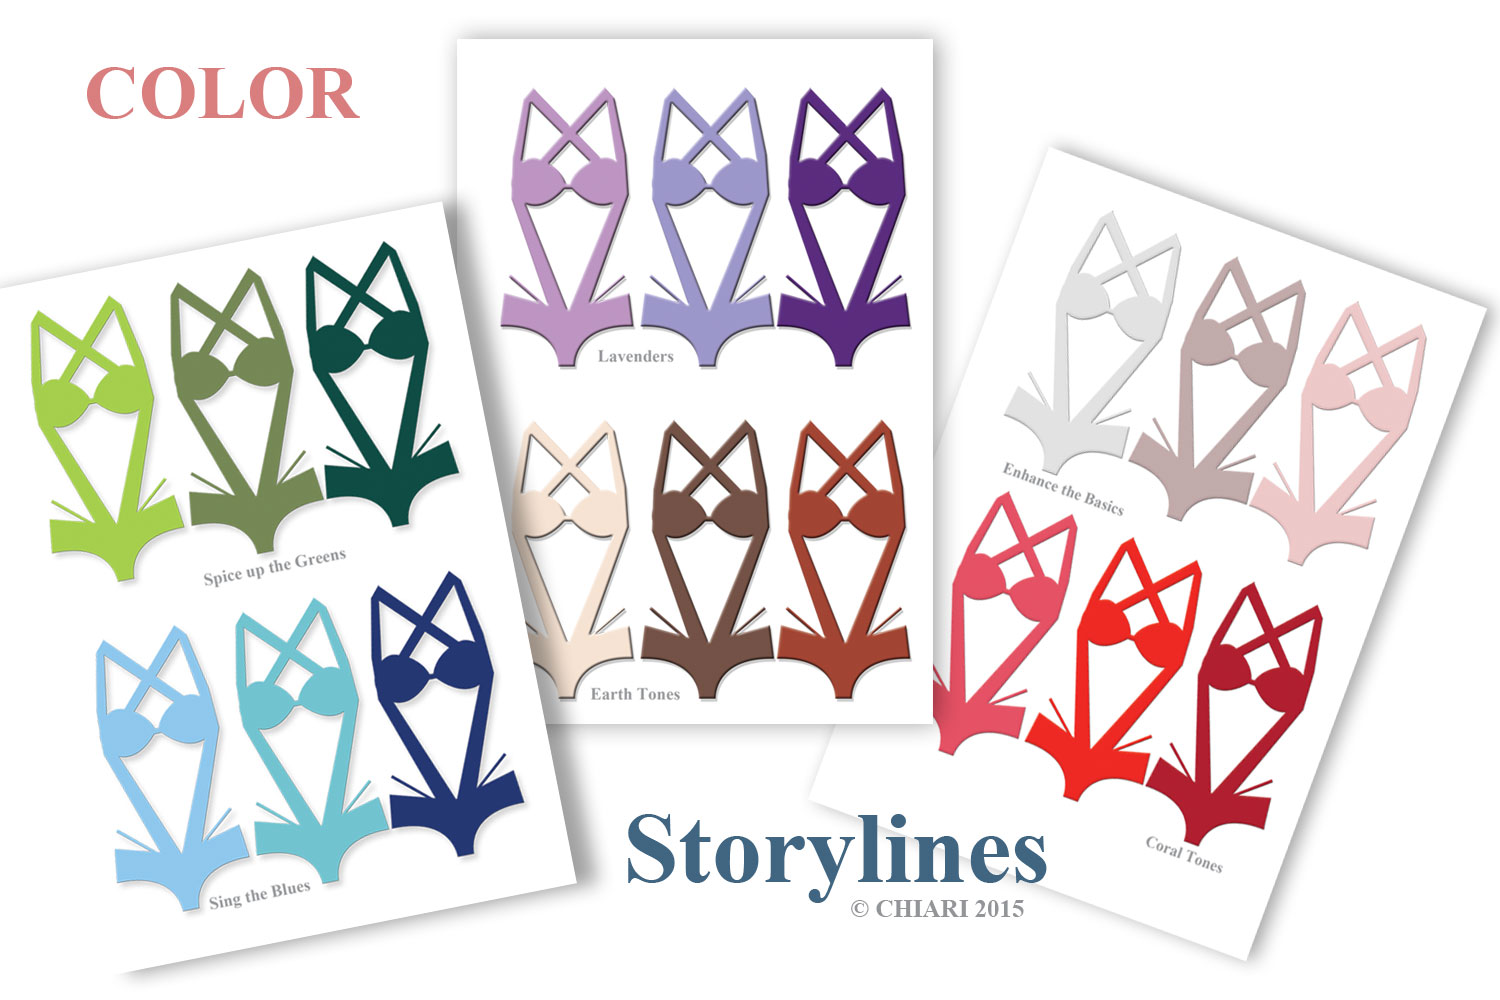 Color Storyline CHIARIstyle 15